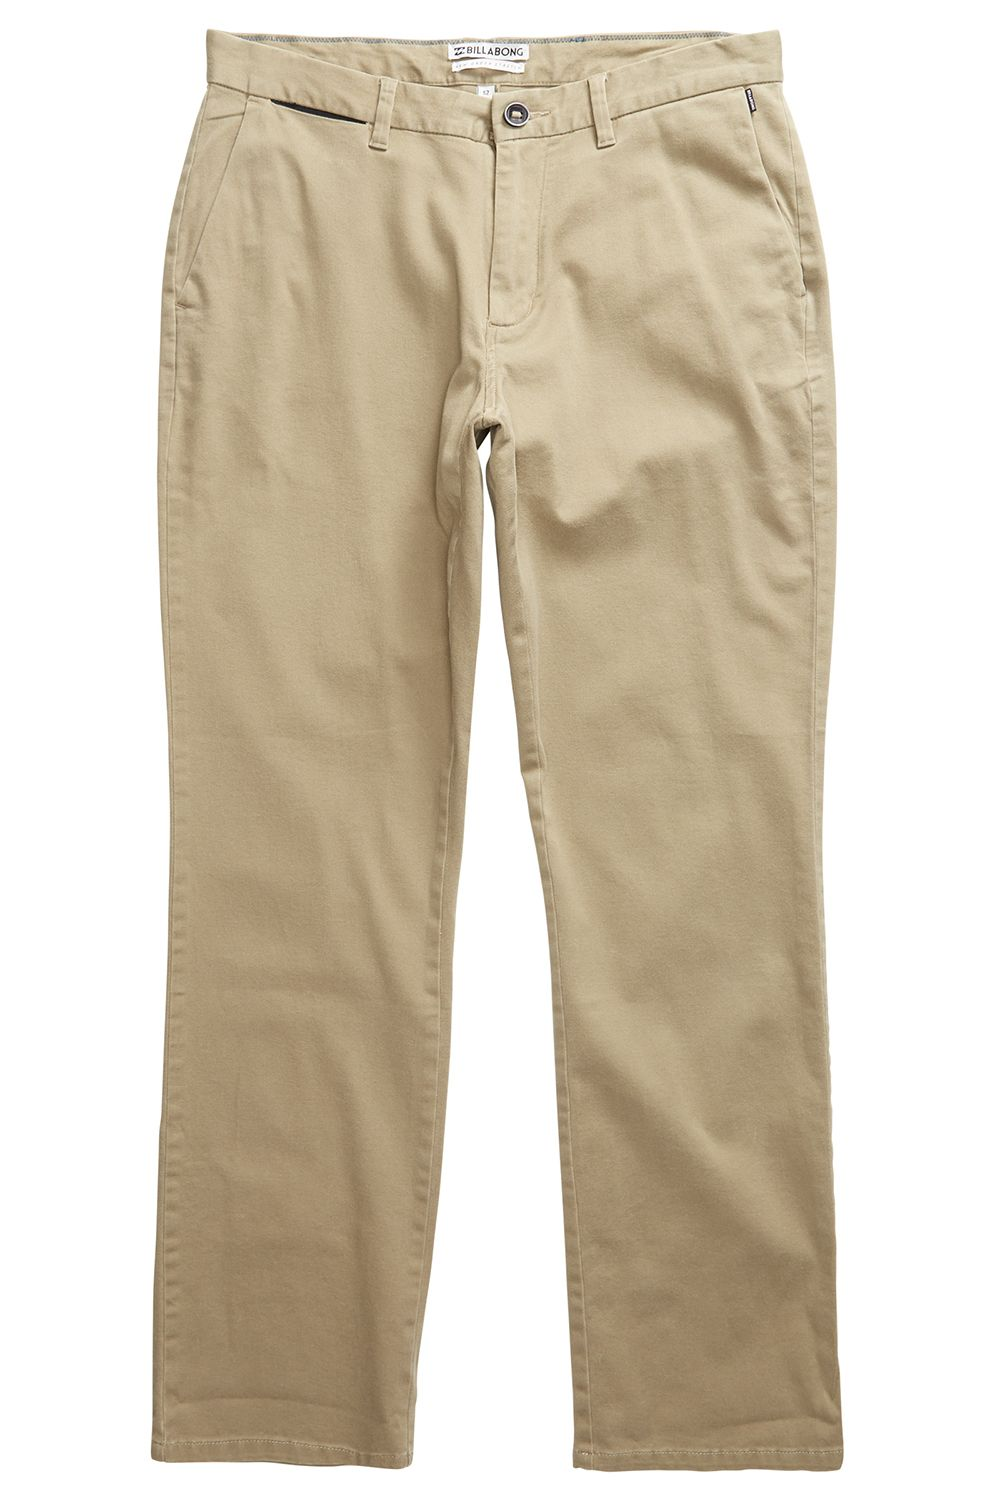 Billabong Pants NEW ORDER CHINO Gravel